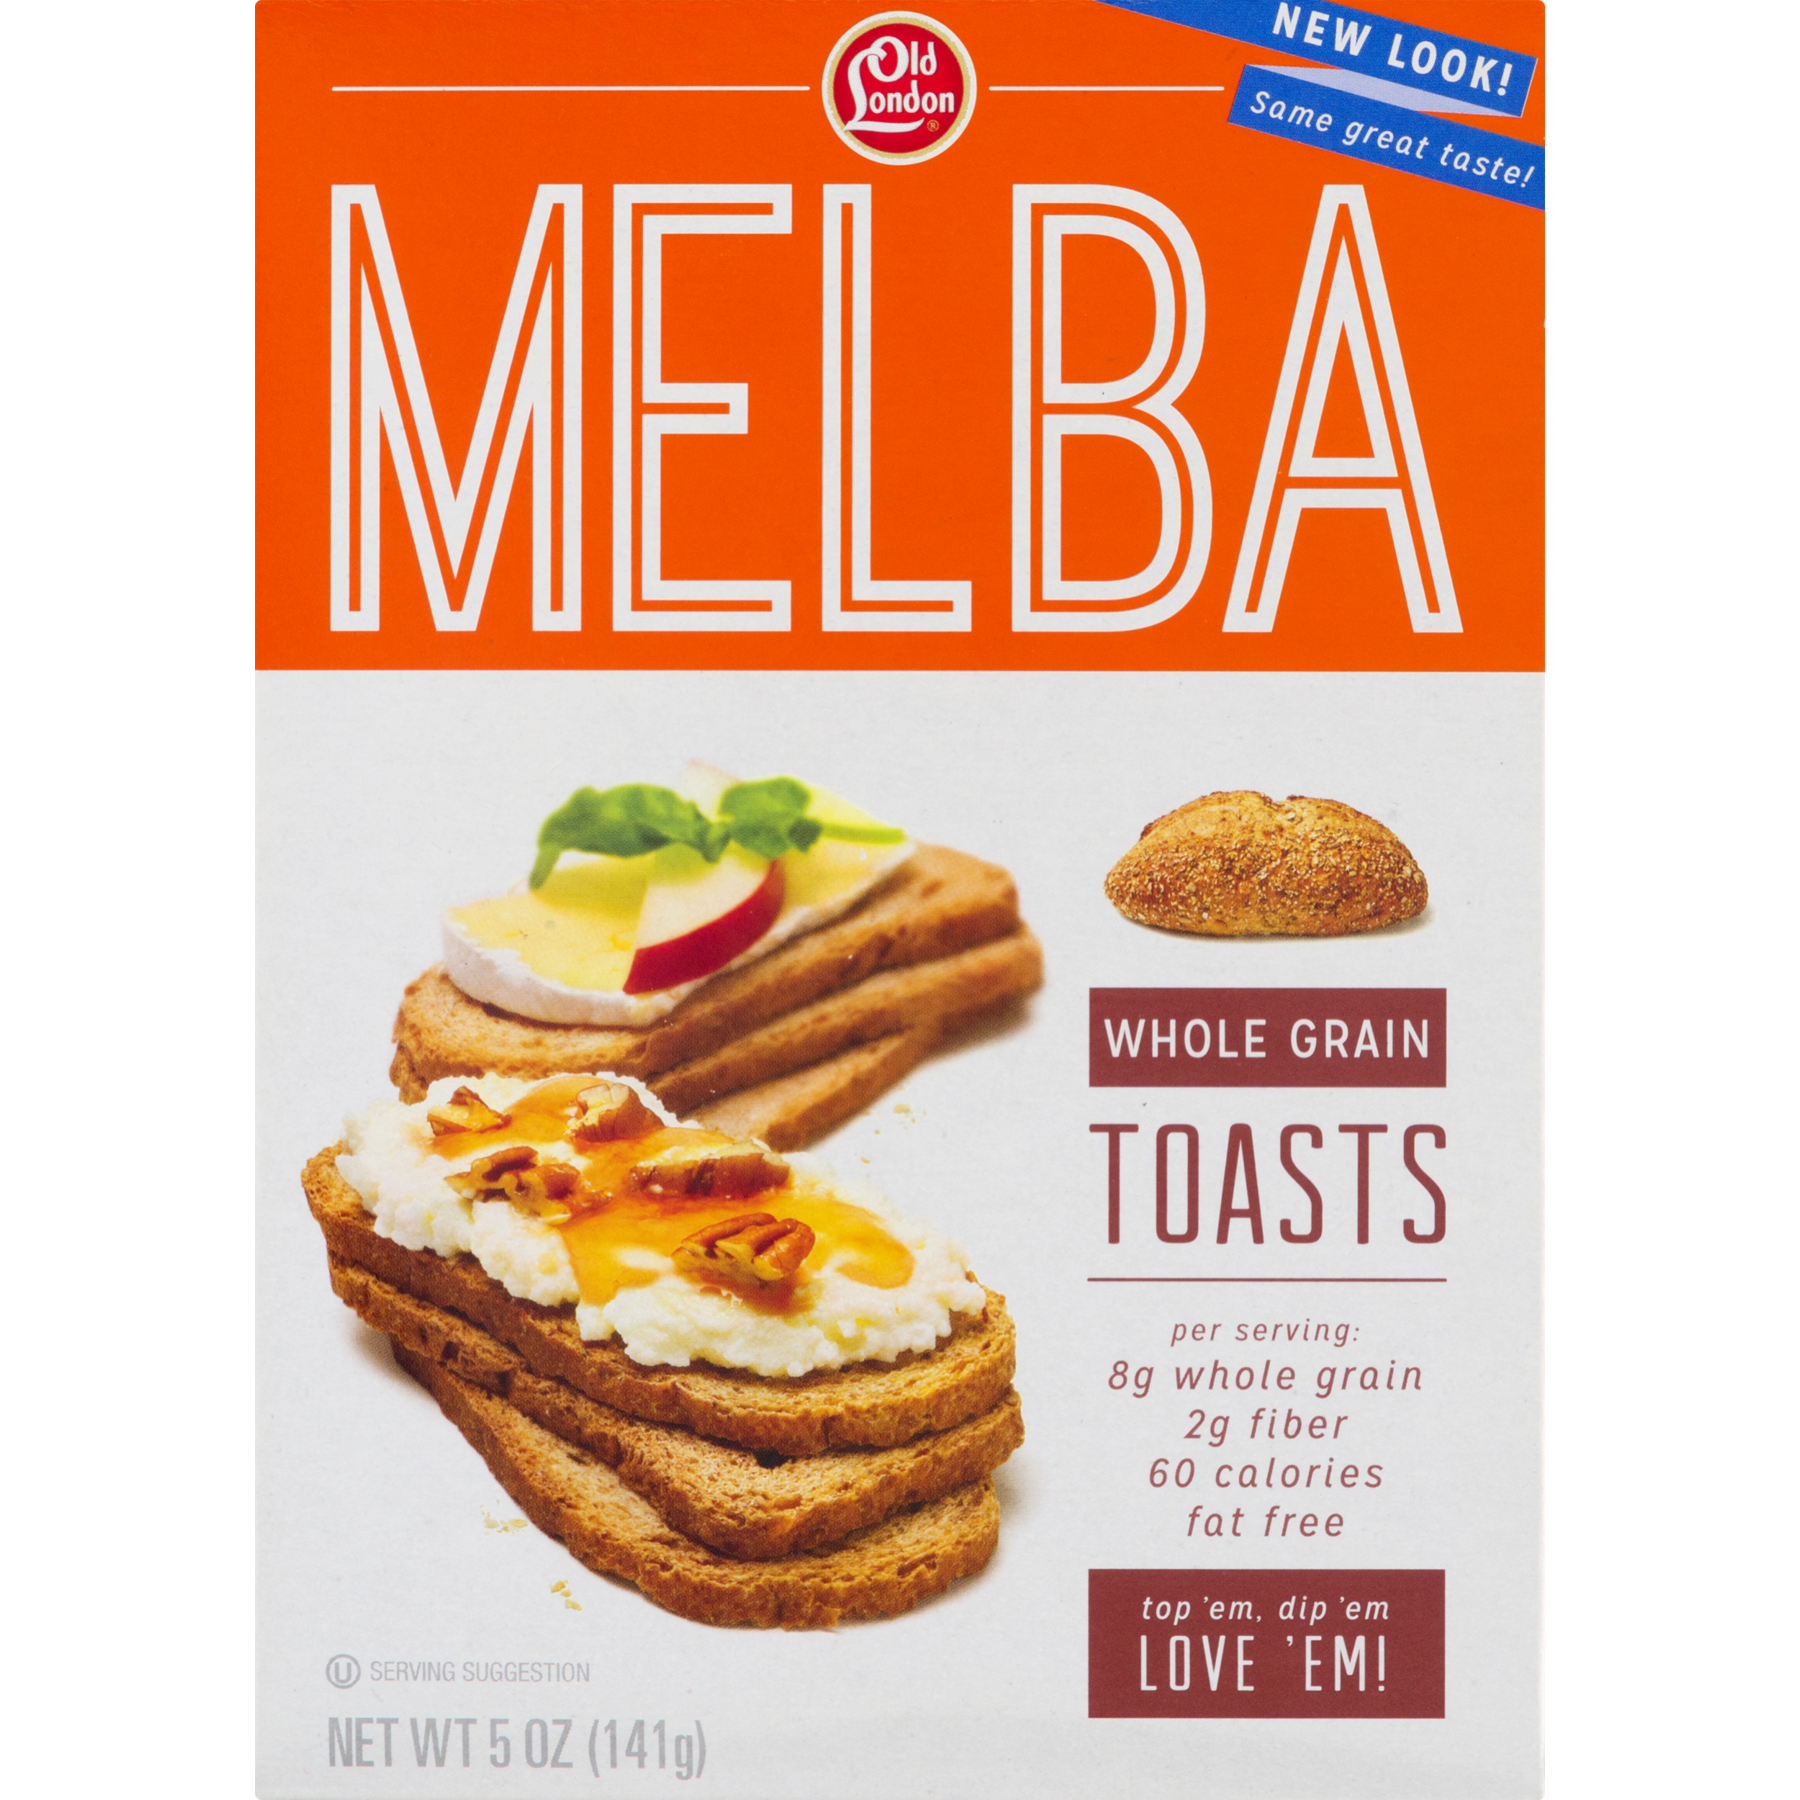 Transparent toast old. London foods melba whole